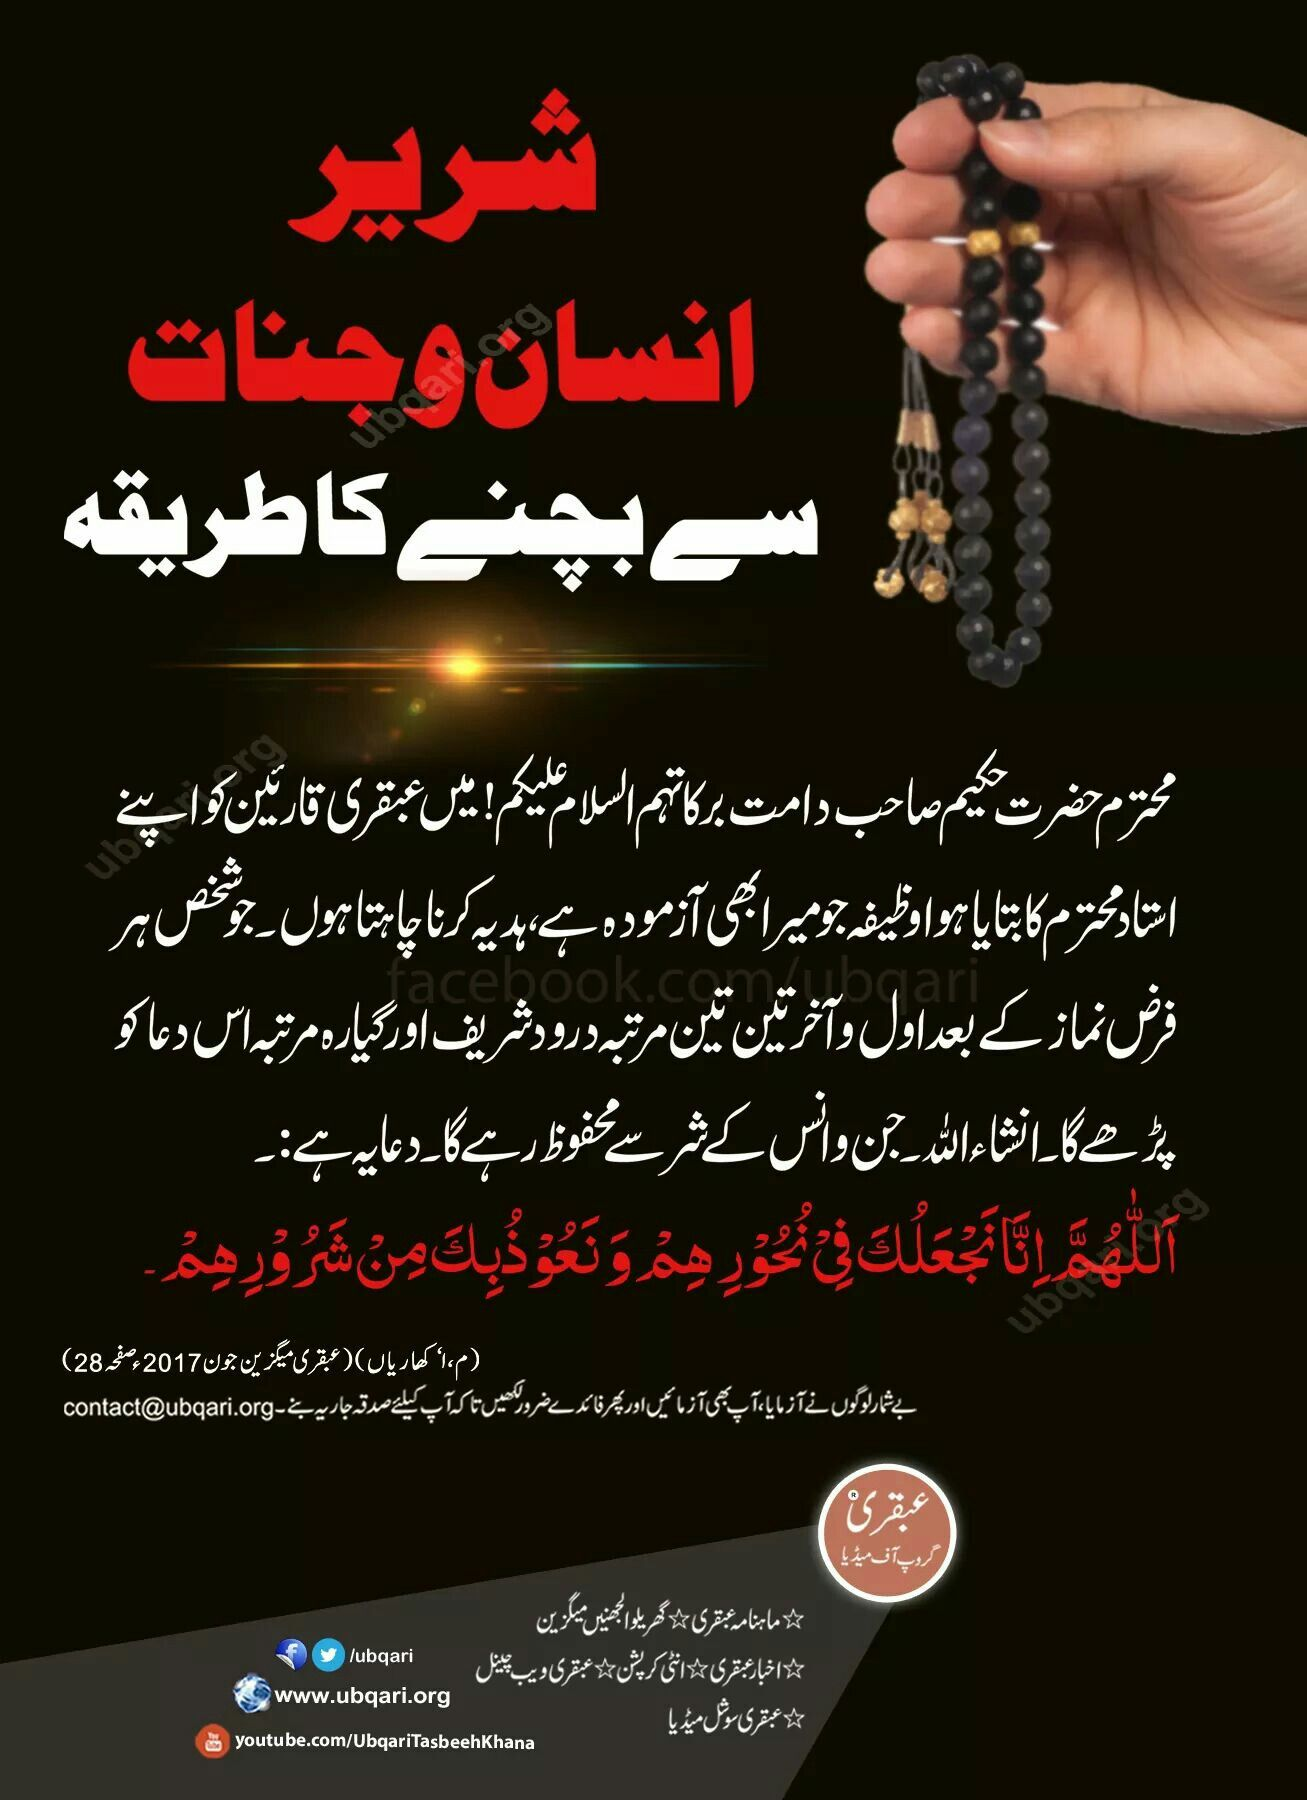 Pin by Shehzad Latif on Islamic collection Tahajjud prayer